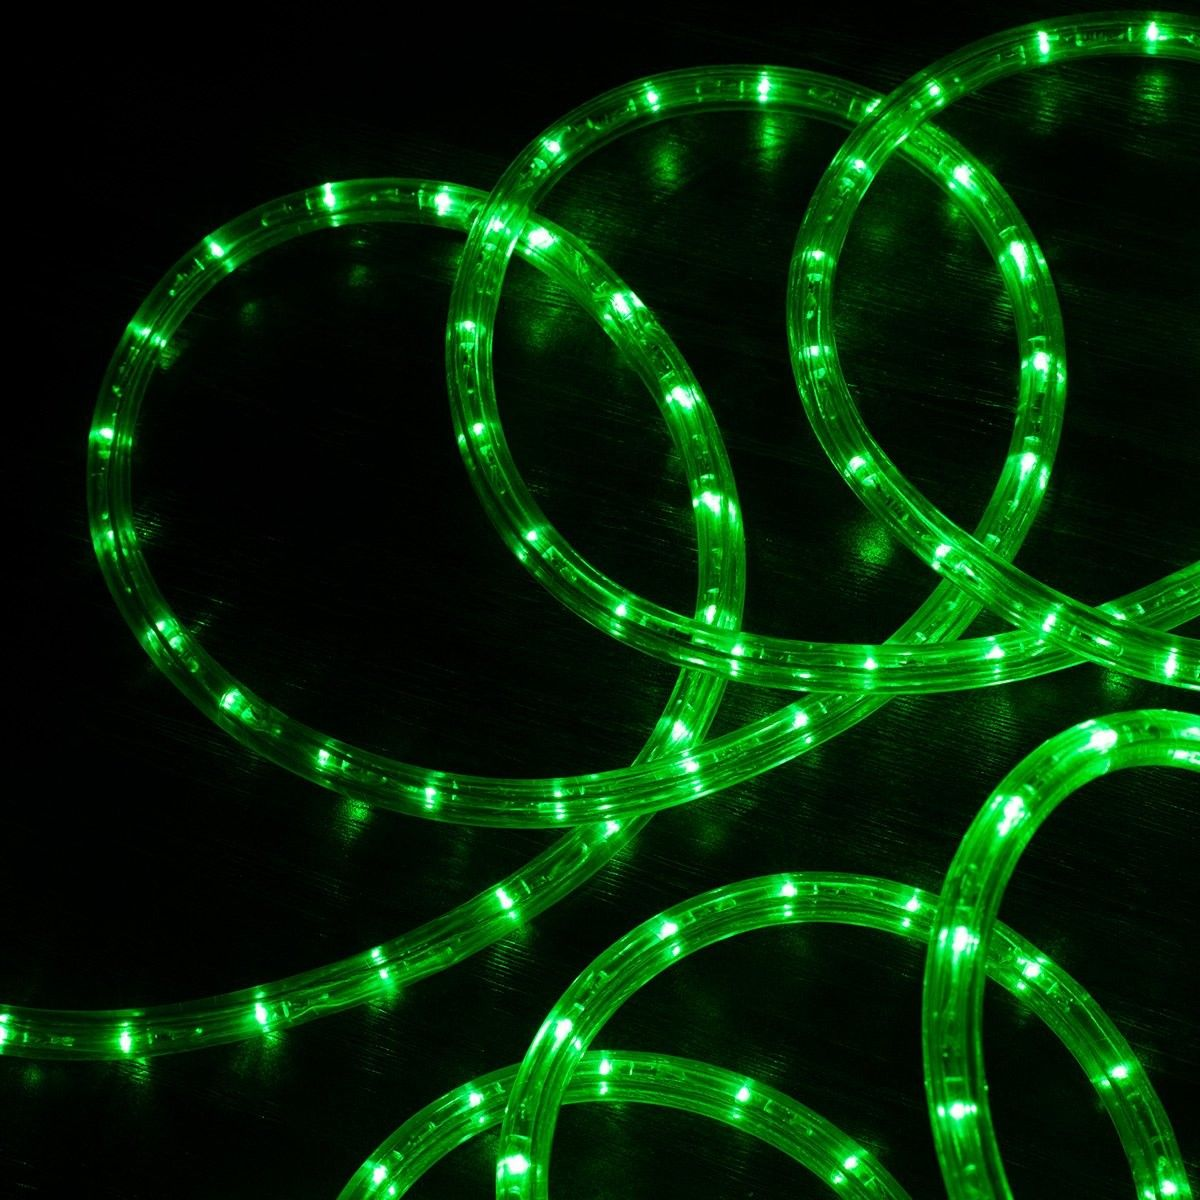 3 8 10 Feet Green Led Rope Lights 2 Wire Accent Holiday Christmas Party Decoration Lighting 10 20 25 50 150 Ft Option Etl Certified Cc18c Led Rope Lights Led Rope Green Led